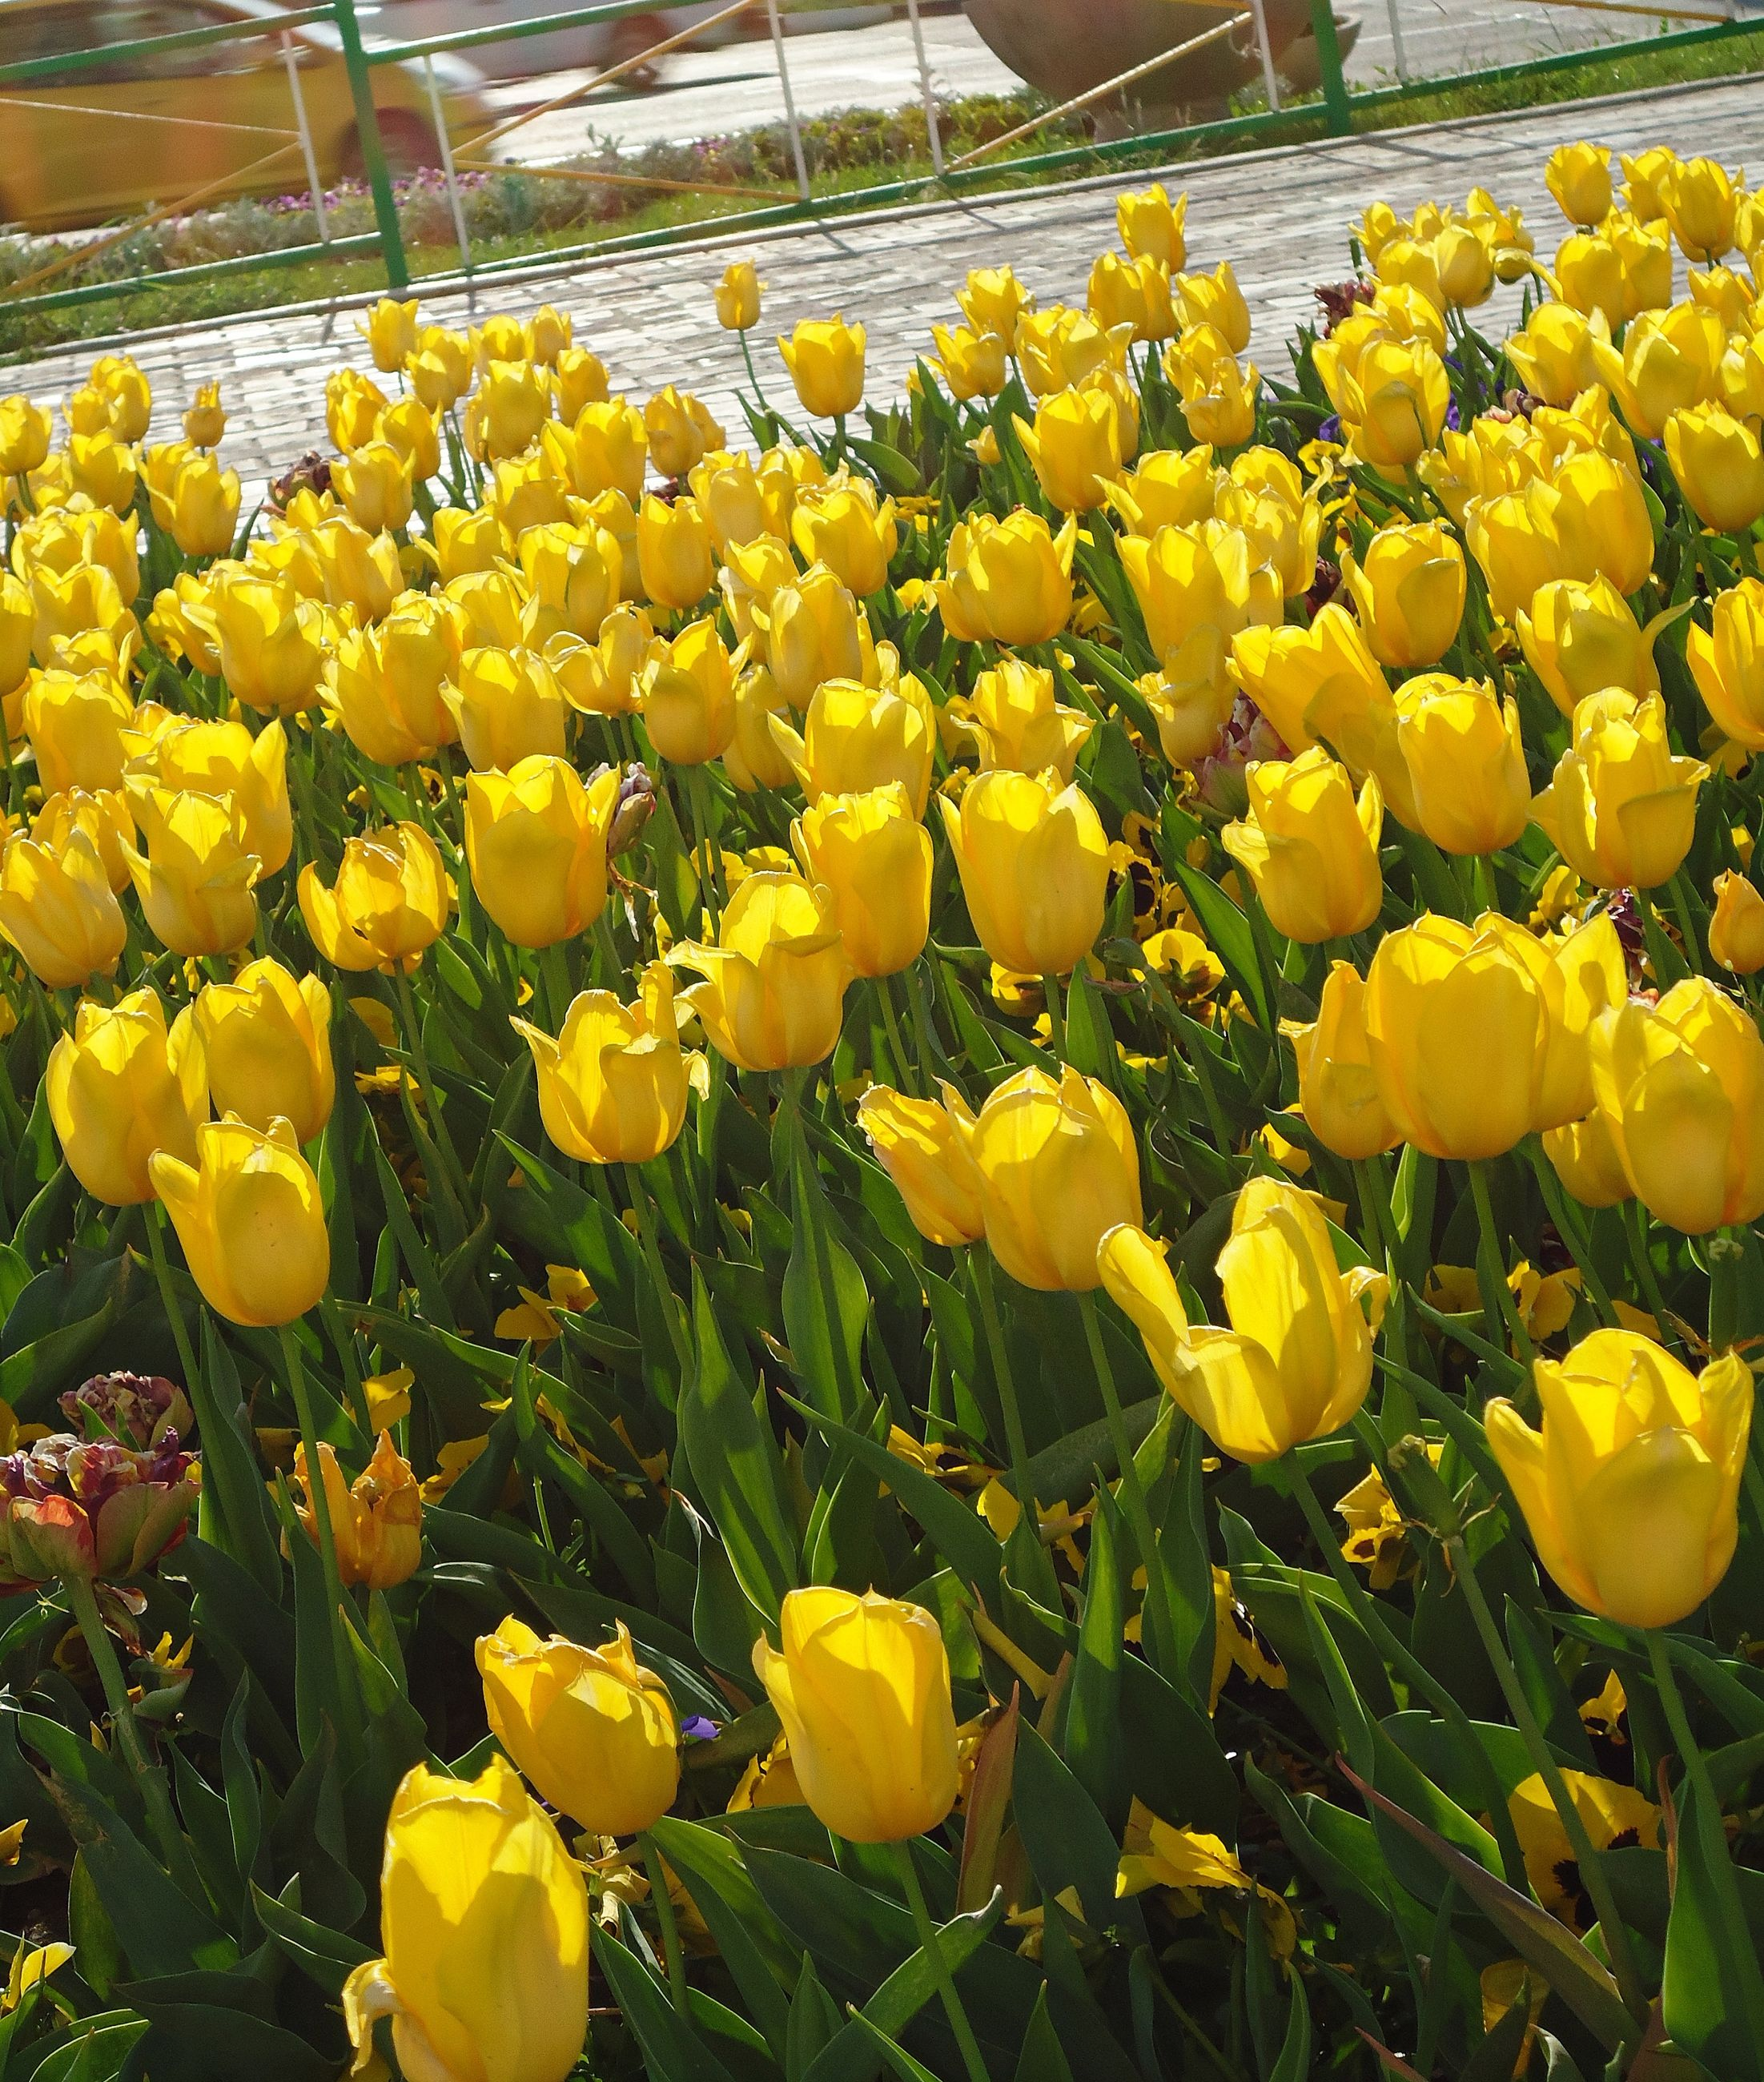 Yellow tulips blooming on sunny day